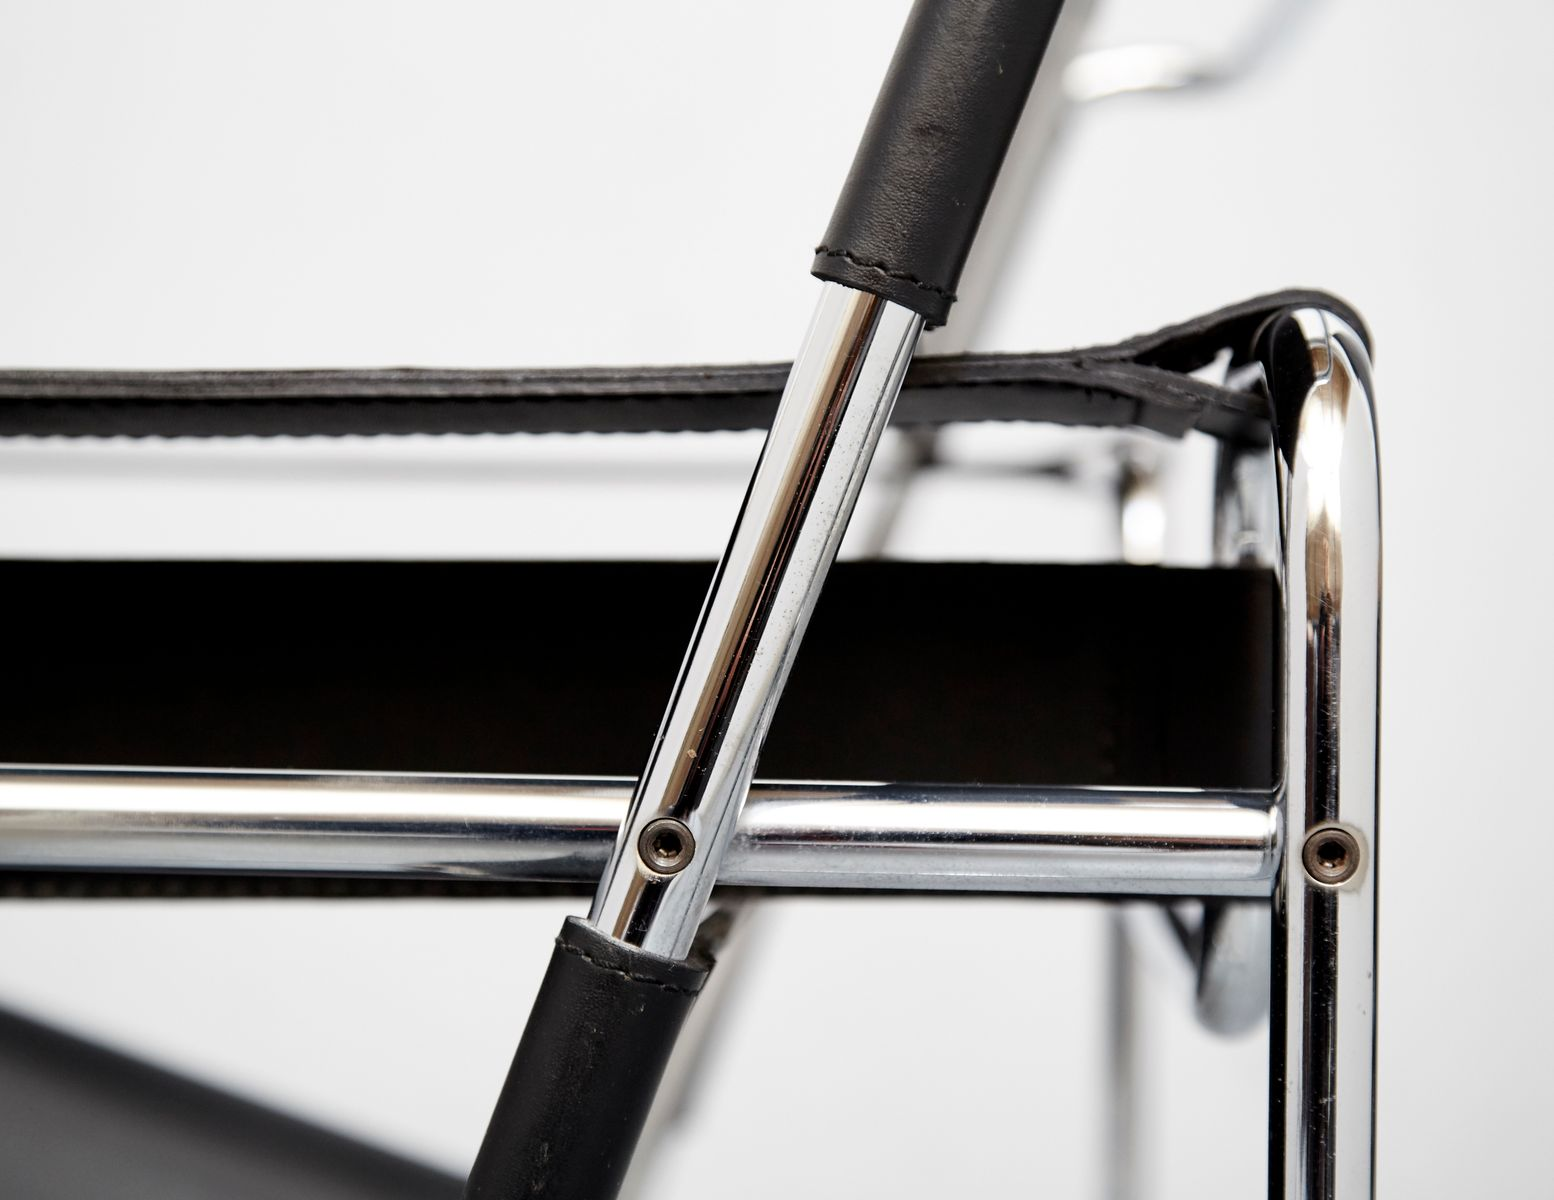 Vintage wassily chair by marcel breuer for knoll international for - Vintage Wassily Chair By Marcel Breuer For Knoll